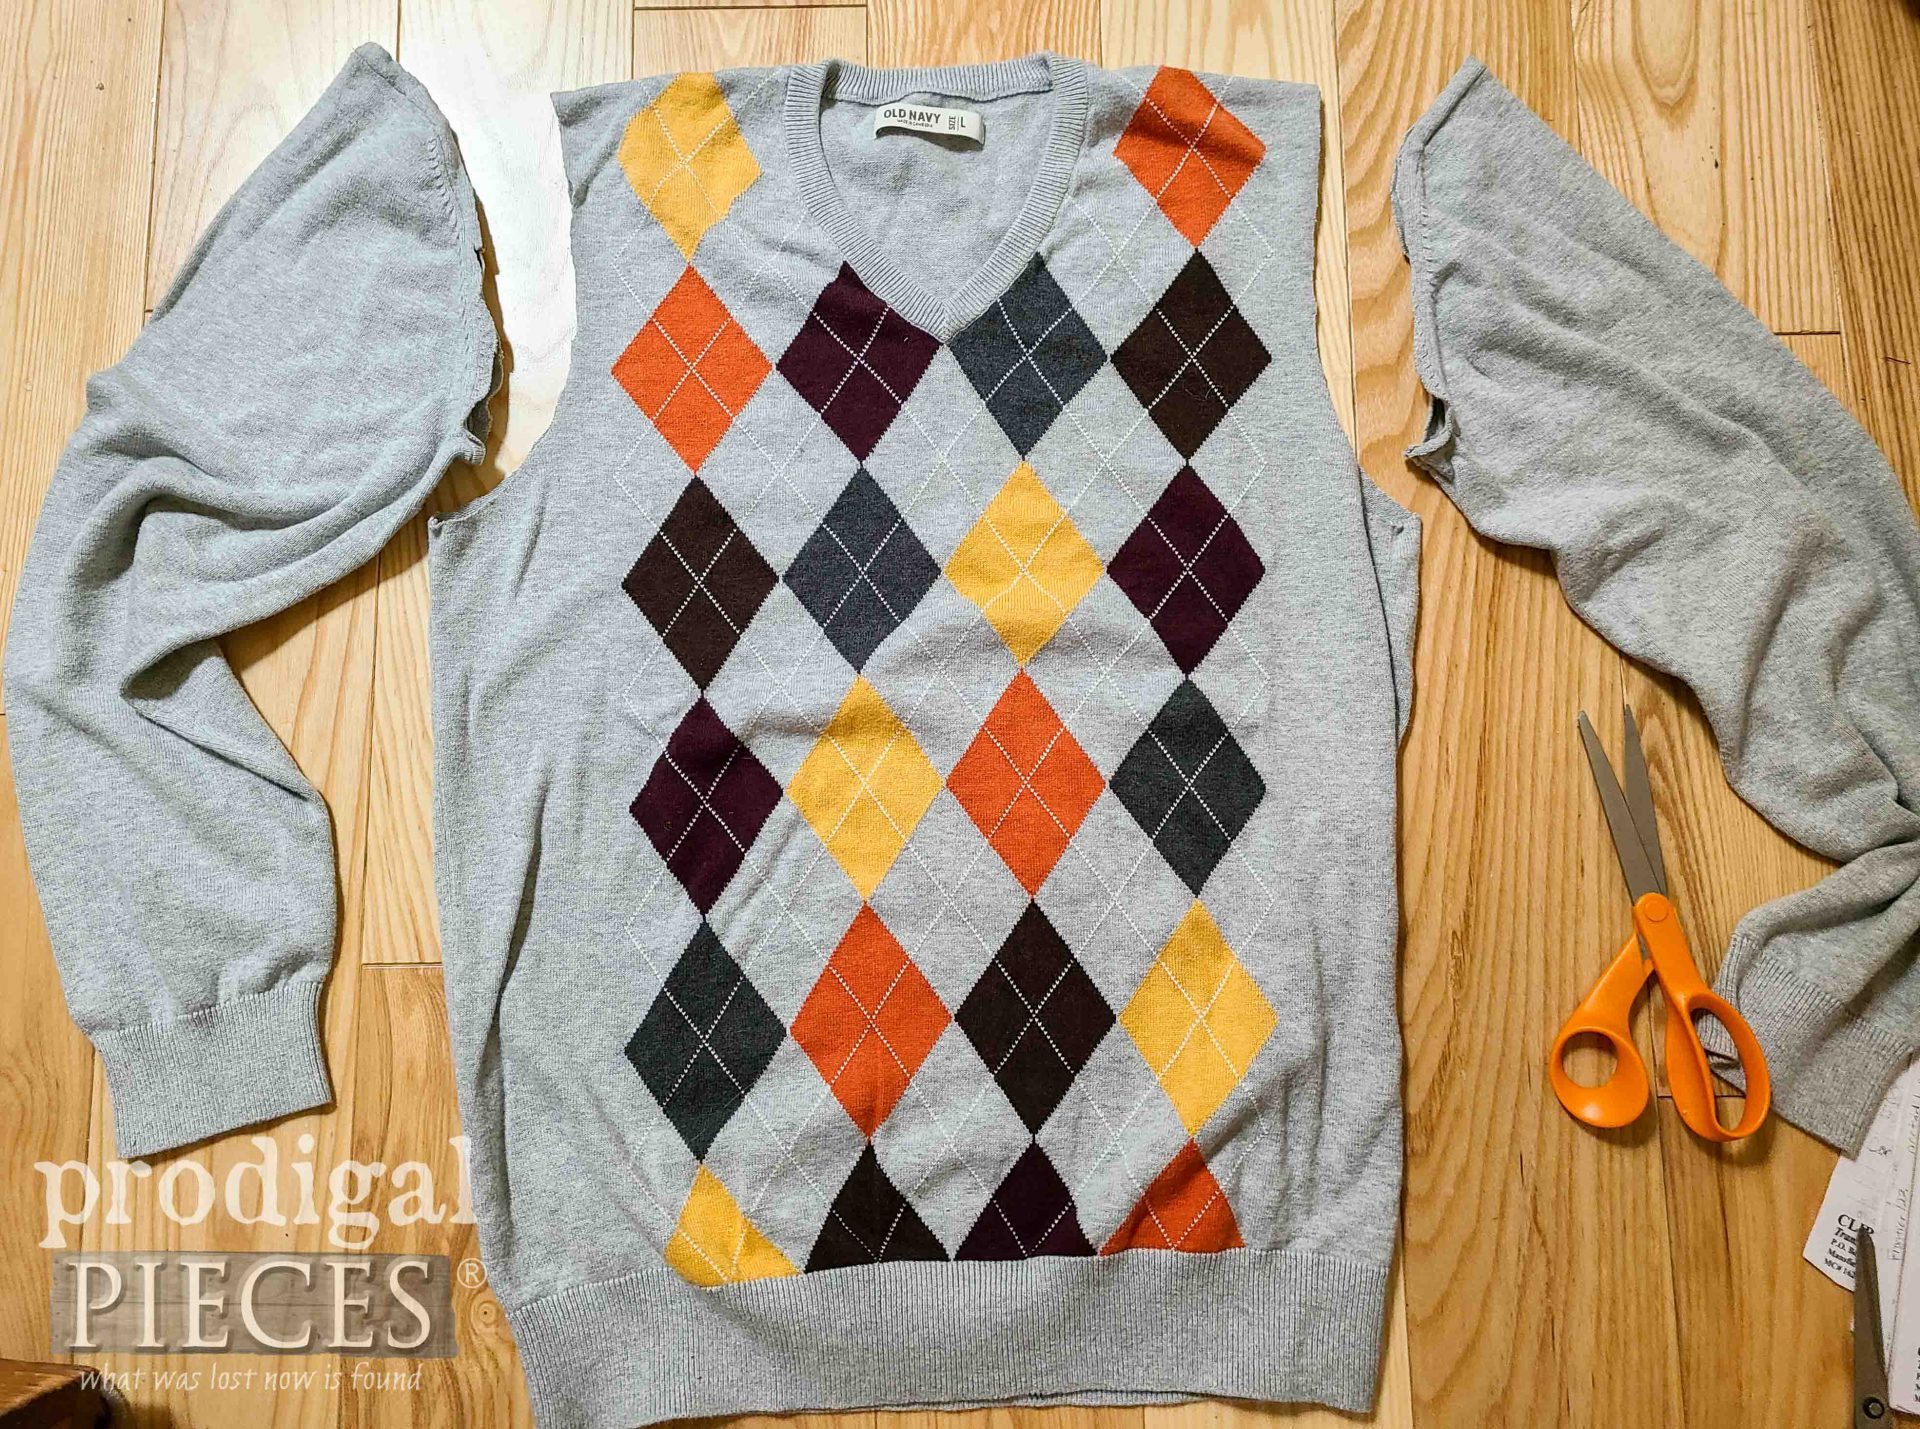 Thrifted Argyle Sweater for DIY Dog Coat by Prodigal Pieces | prodigalpieces.com #prodigalpieces